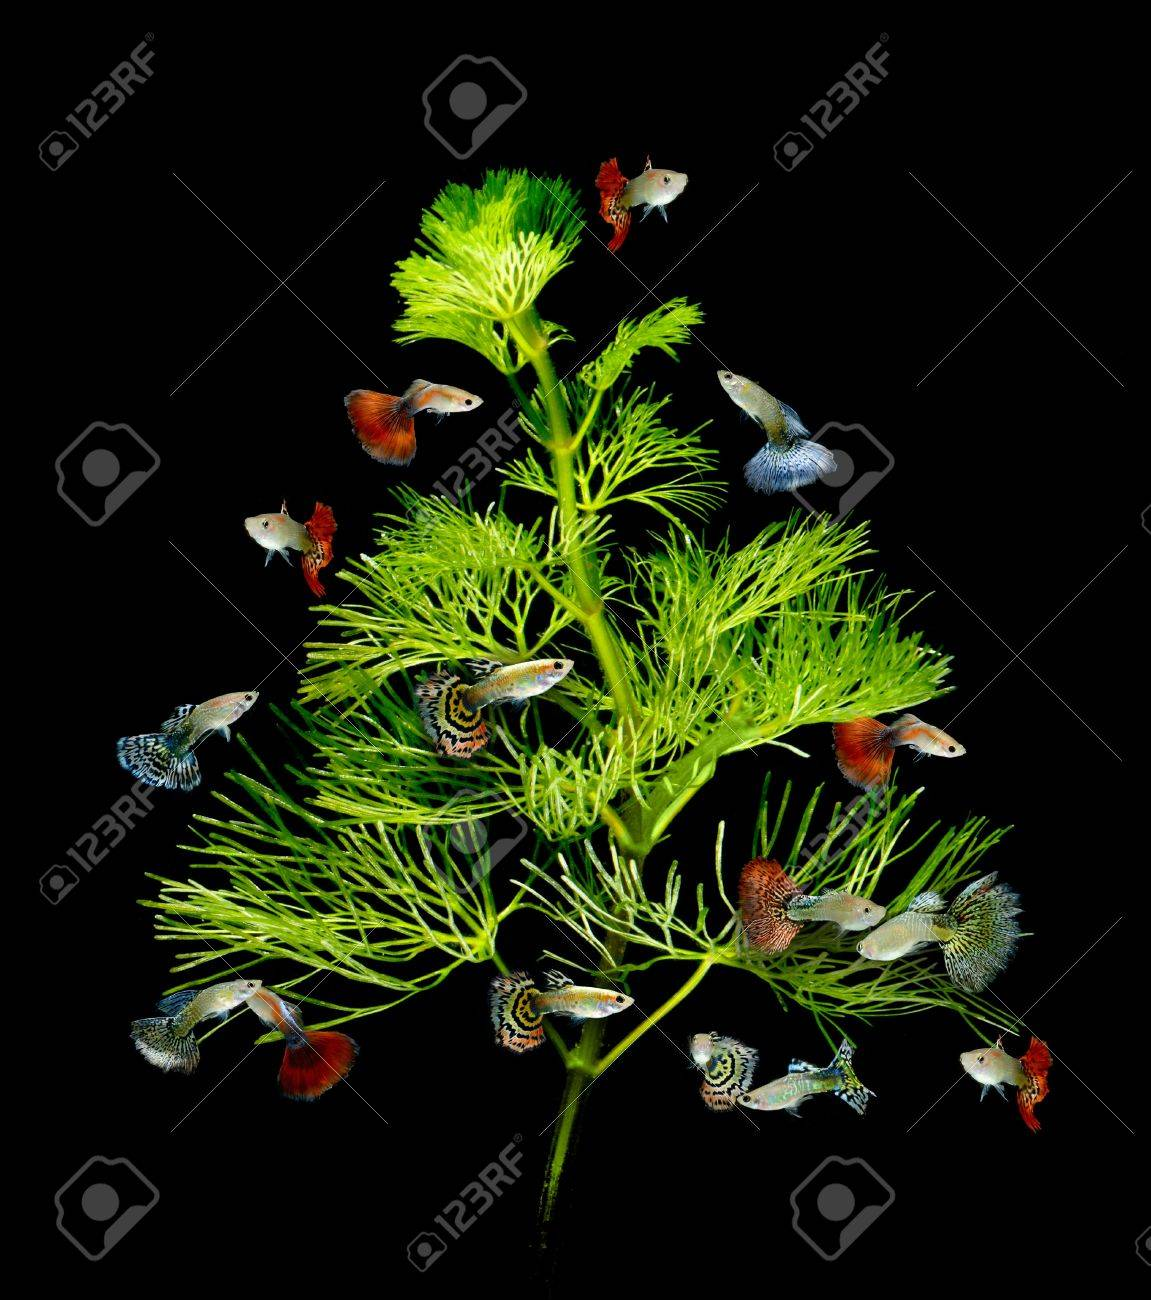 Christmas Tree Underwater Concept With Guppy Fish Ornament On